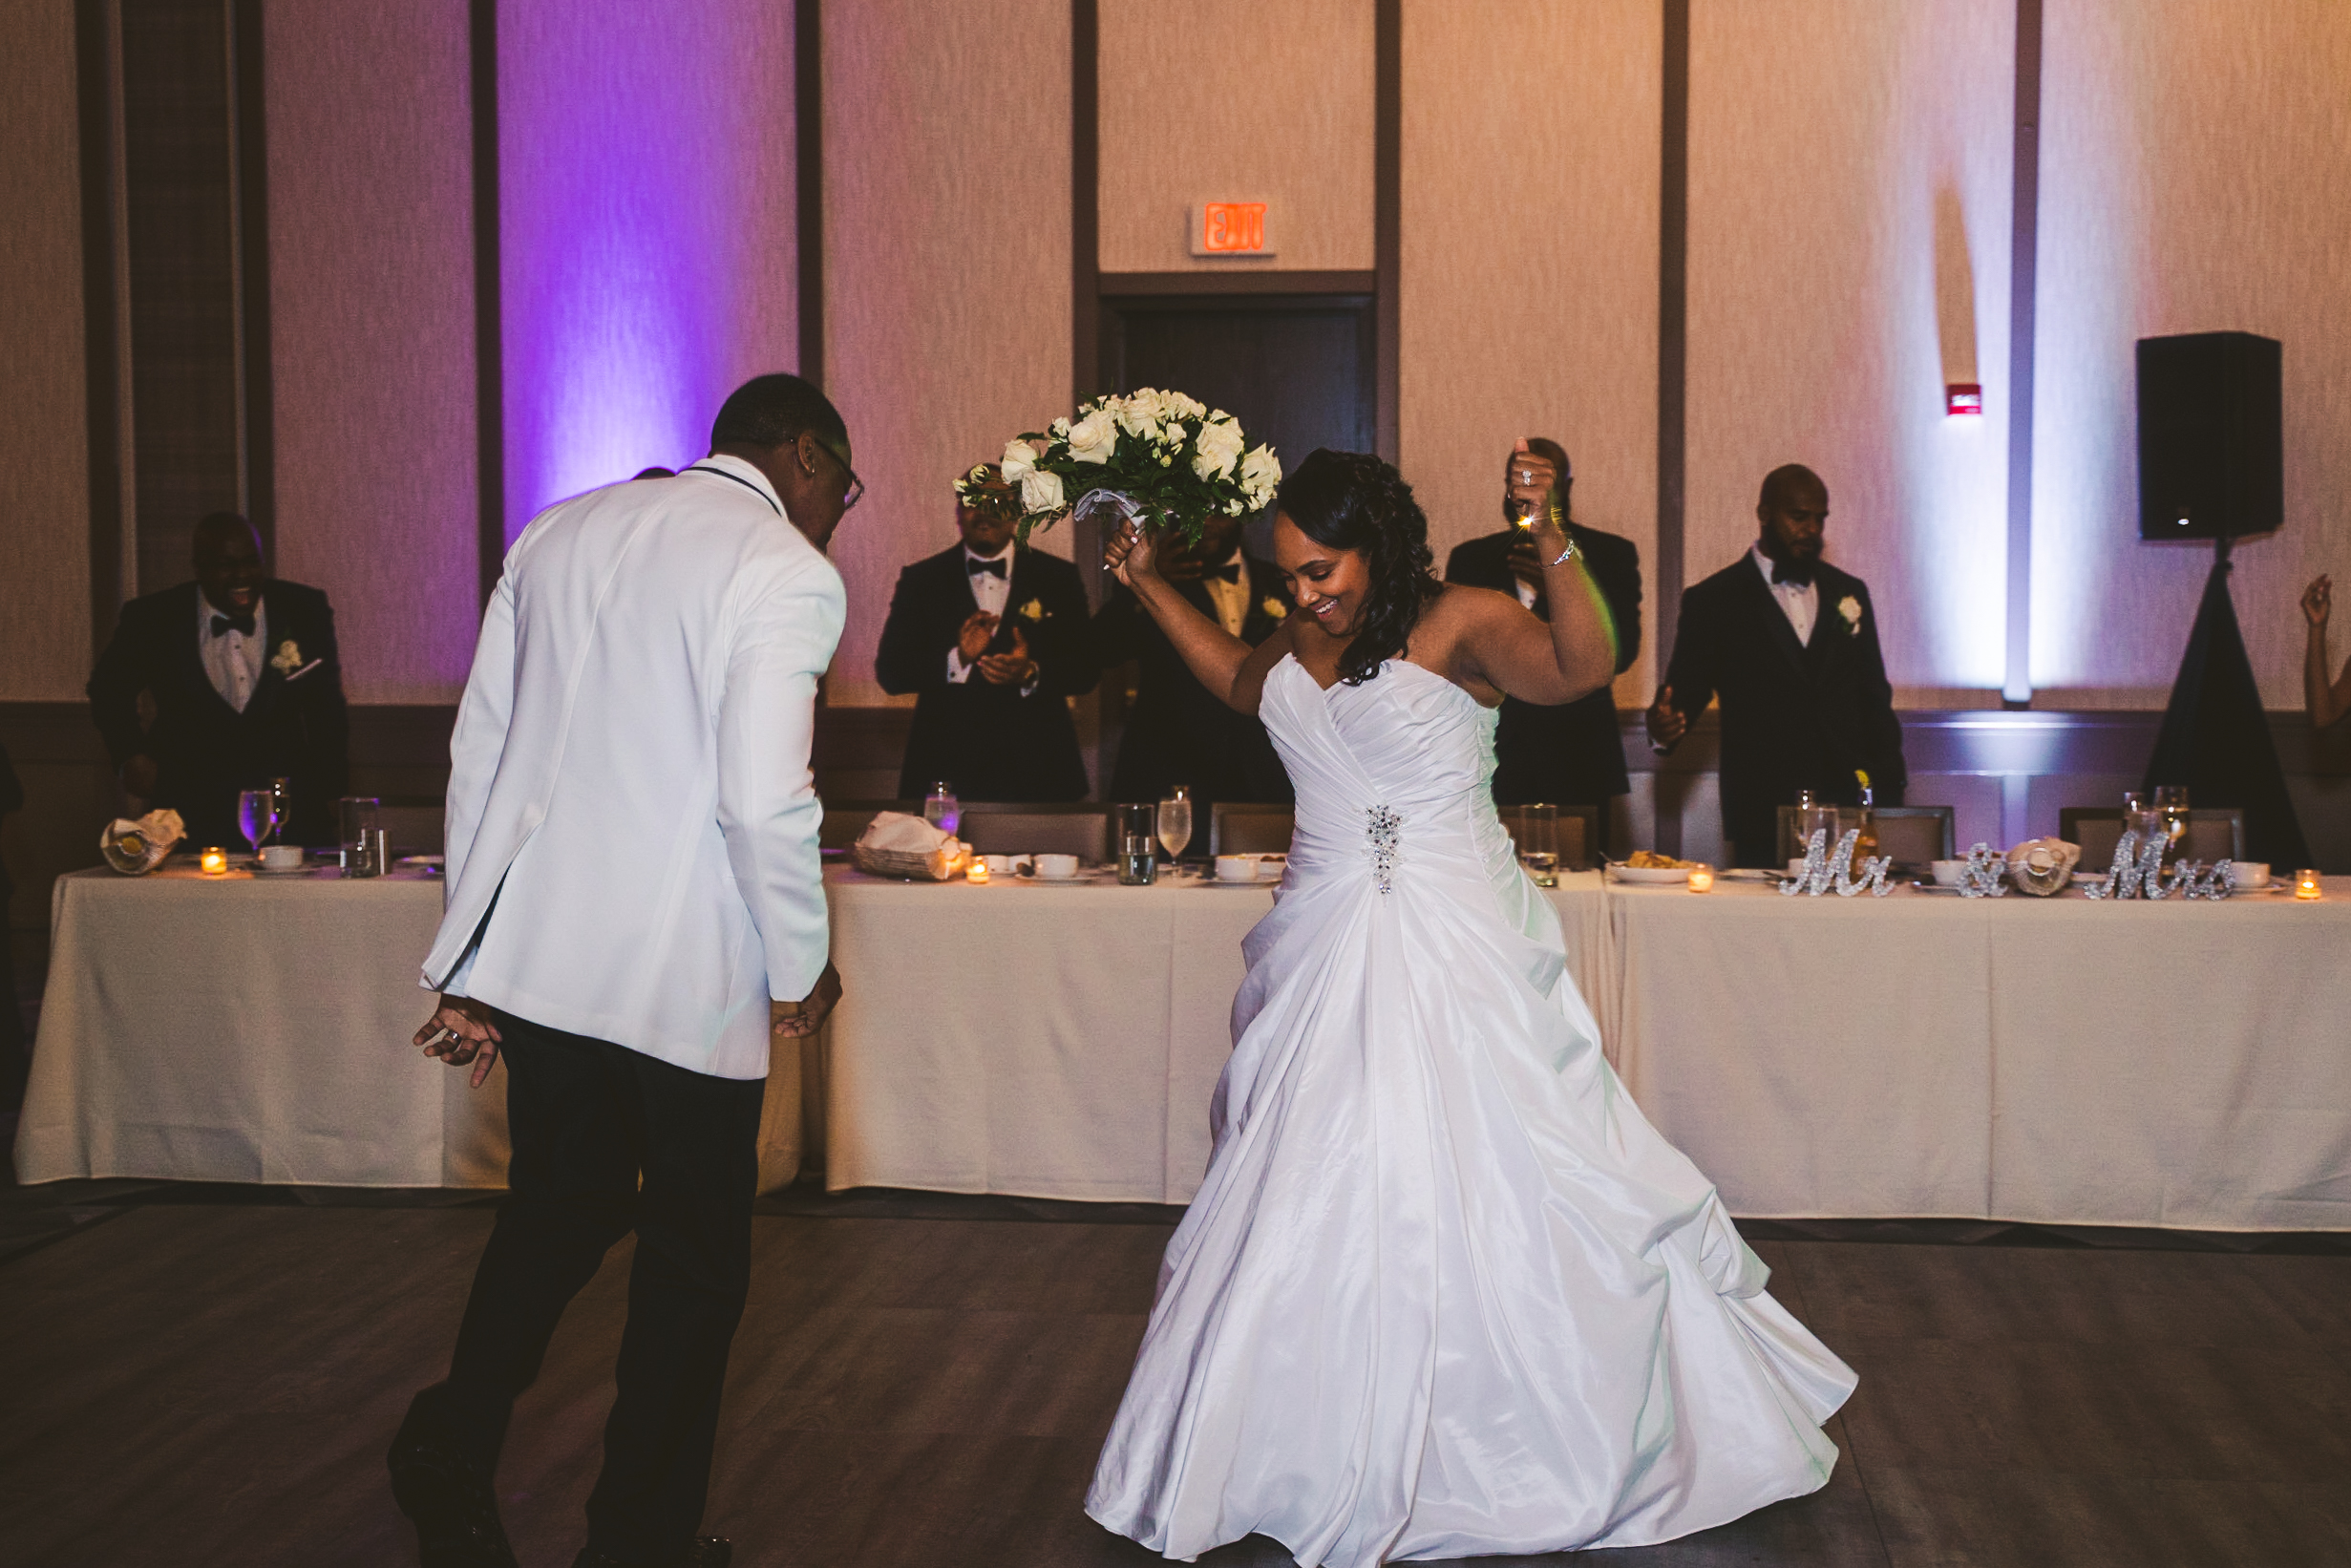 First Dance at Reception at Toledo Renaissance Hotel Downtown with Wedding Photographers